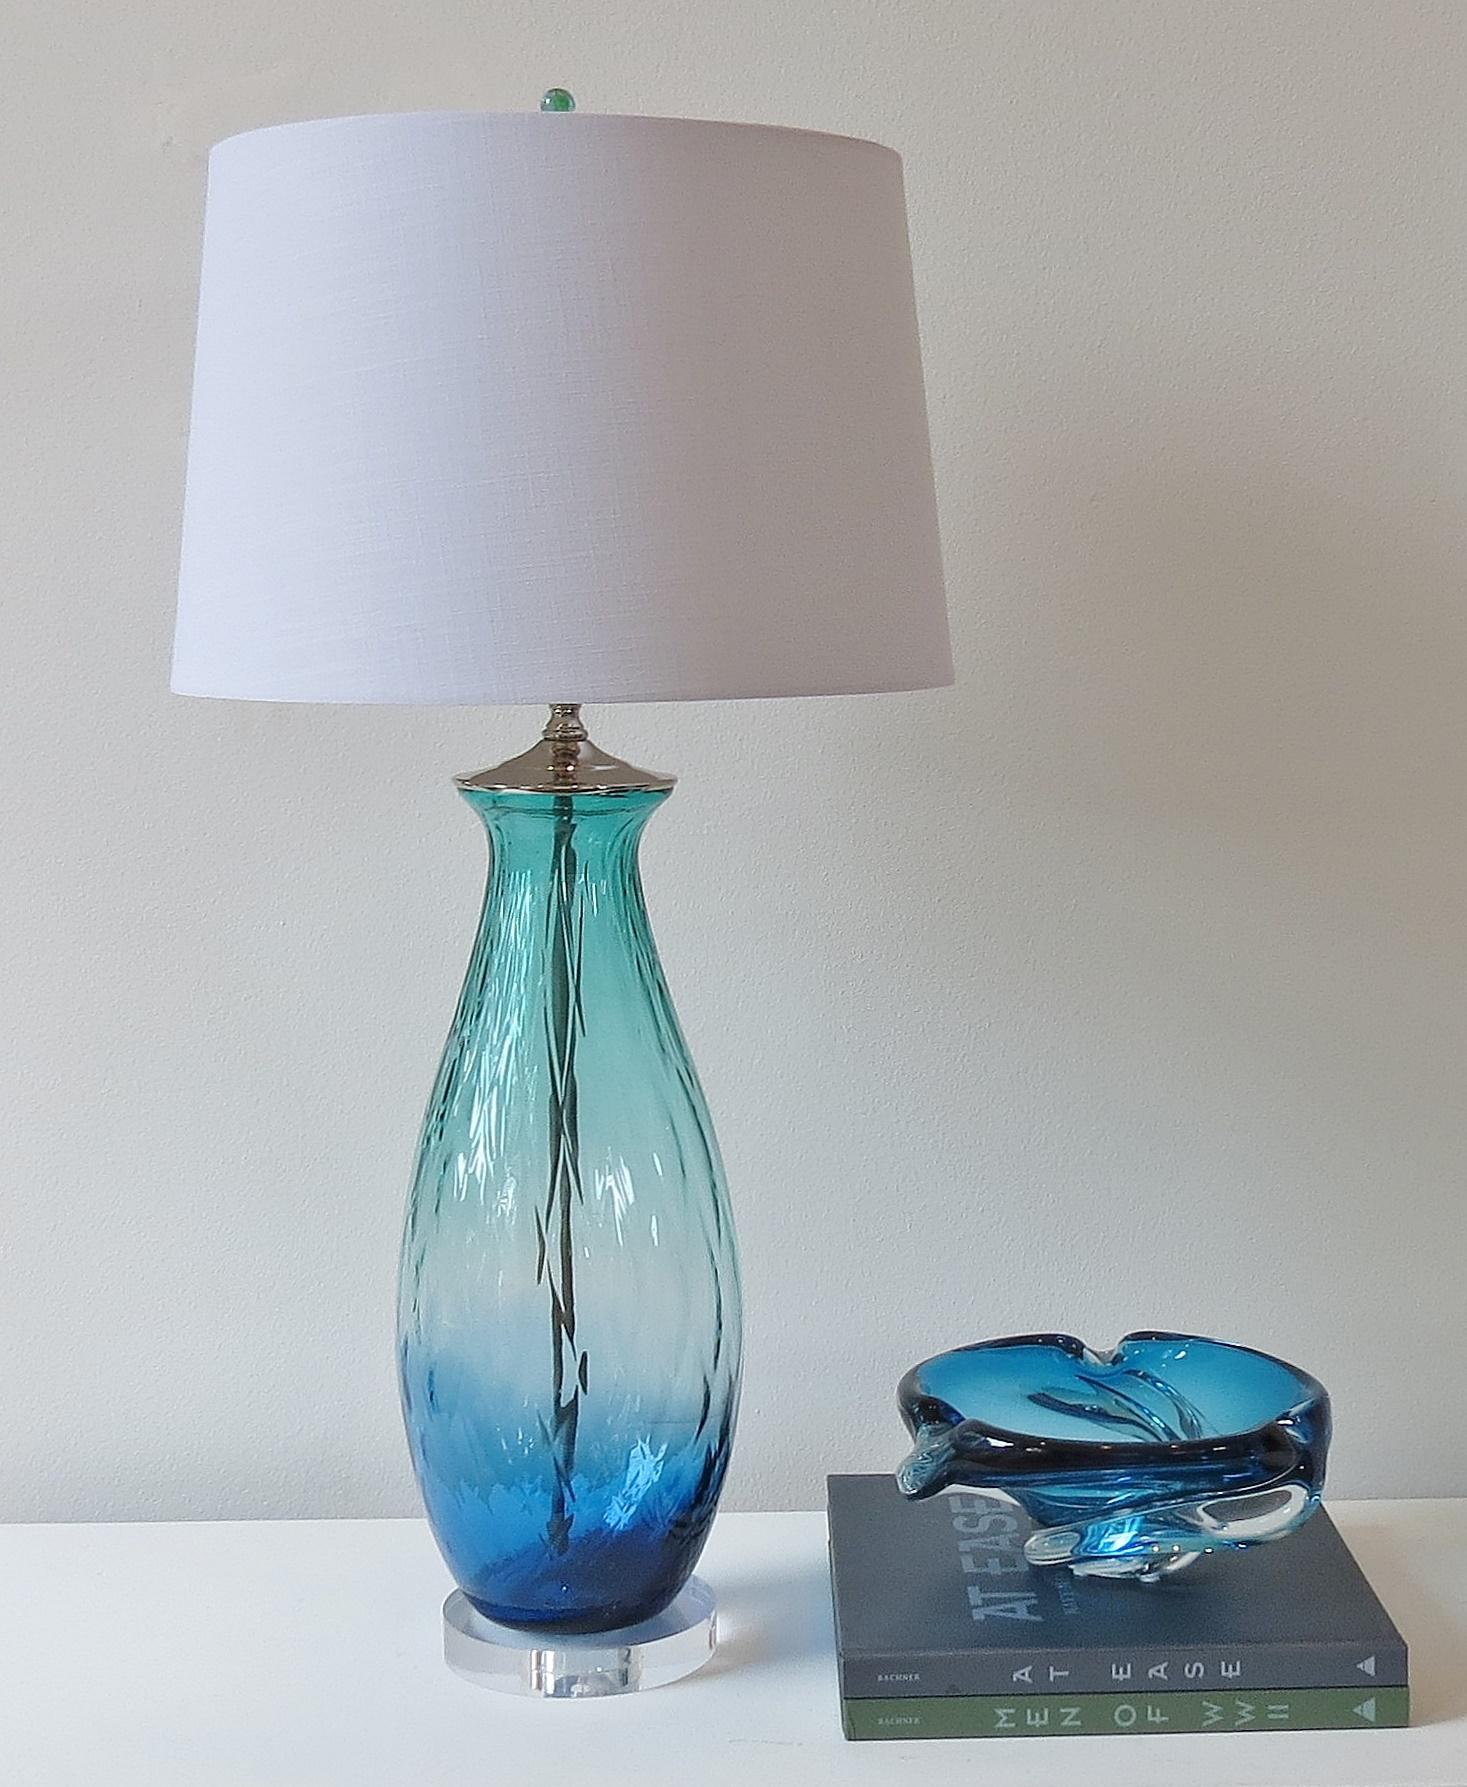 Ocean Blue And Green Glass Table Lamp   Image 2 Of 3